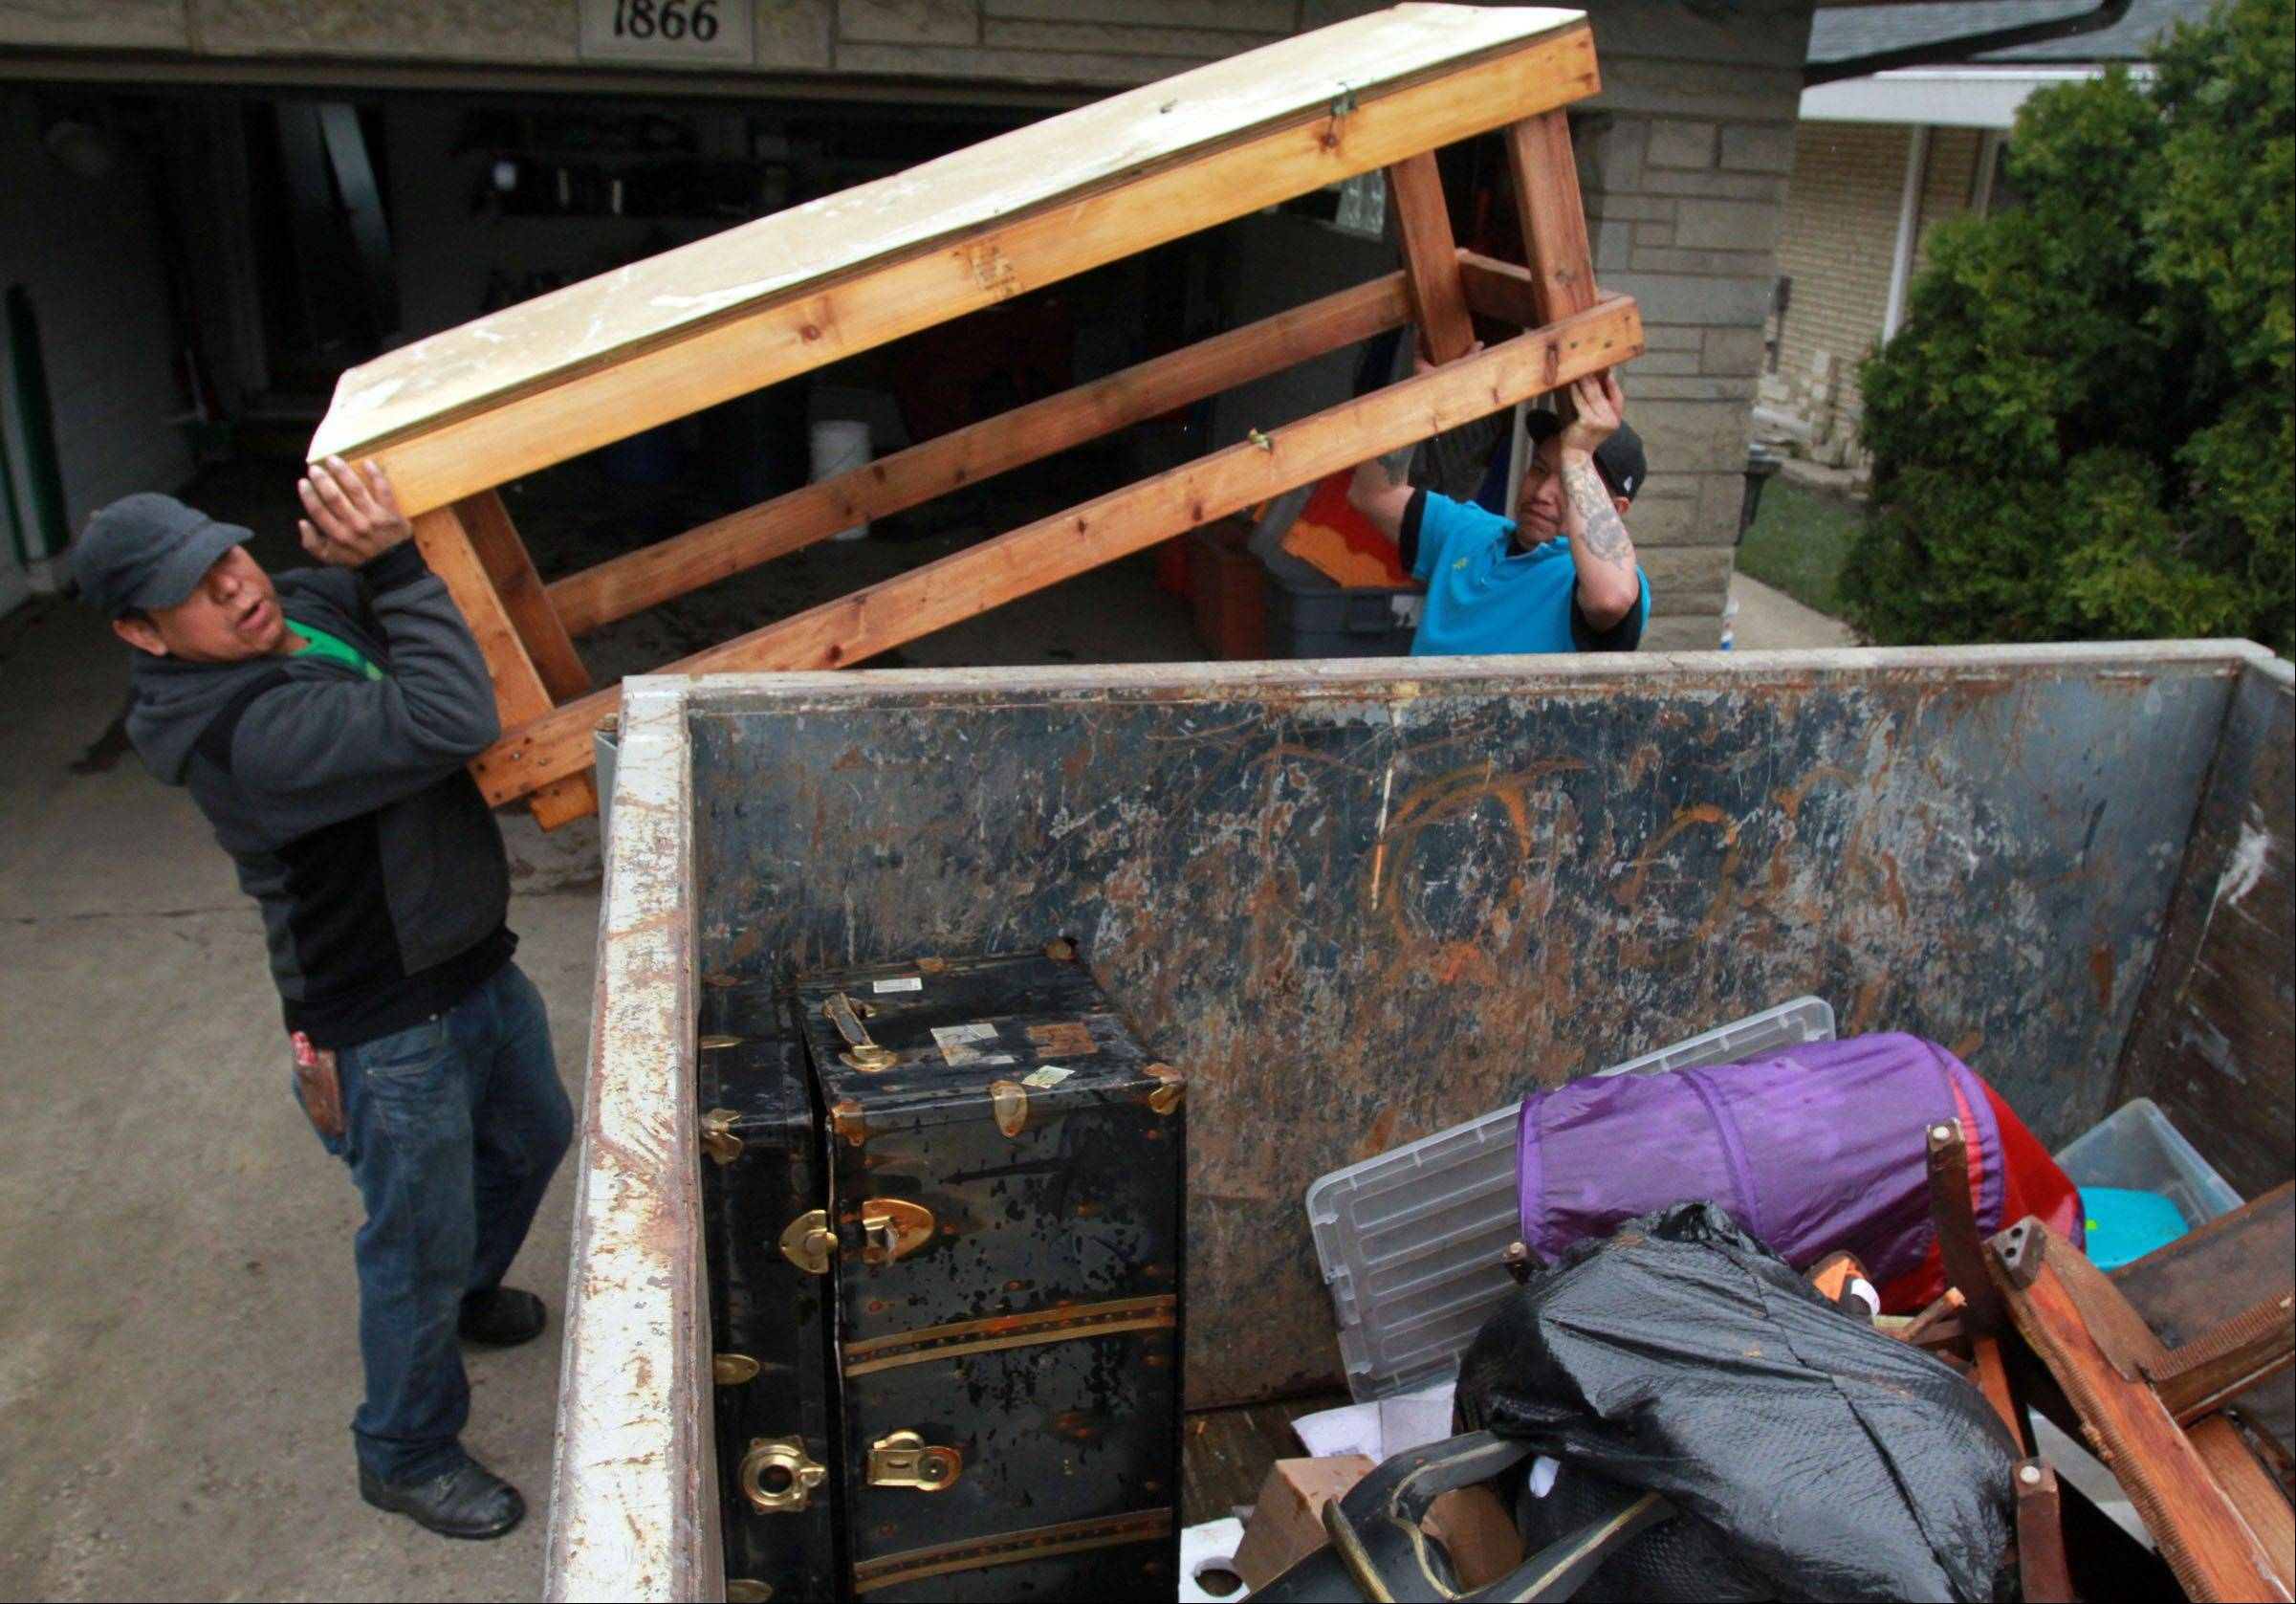 Danny Mateos, right, and Paco Matoes with Arthur J. Rogers and Company throw furniture in a dumpster from Kathi And Russell Fantetti's home on Berry Lane in Des Plaines on Tuesday, April 23. Kathi said they lost everything in the basement including furniture.